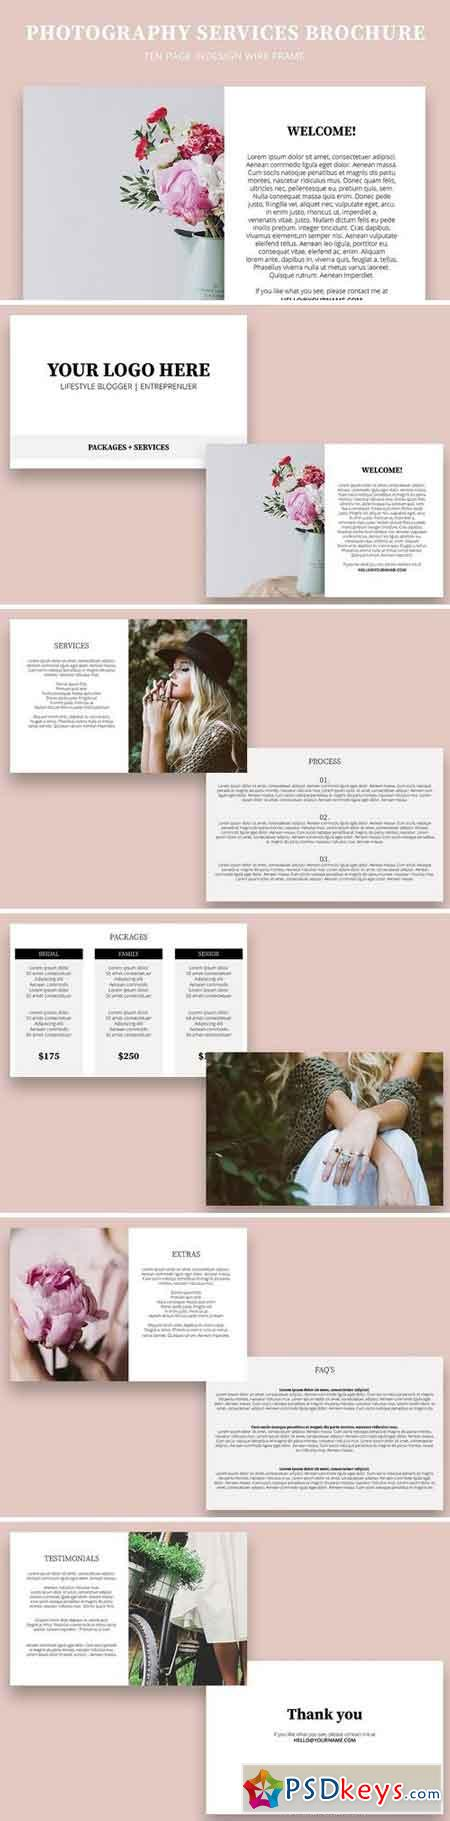 Photography Services Brochure 1570076